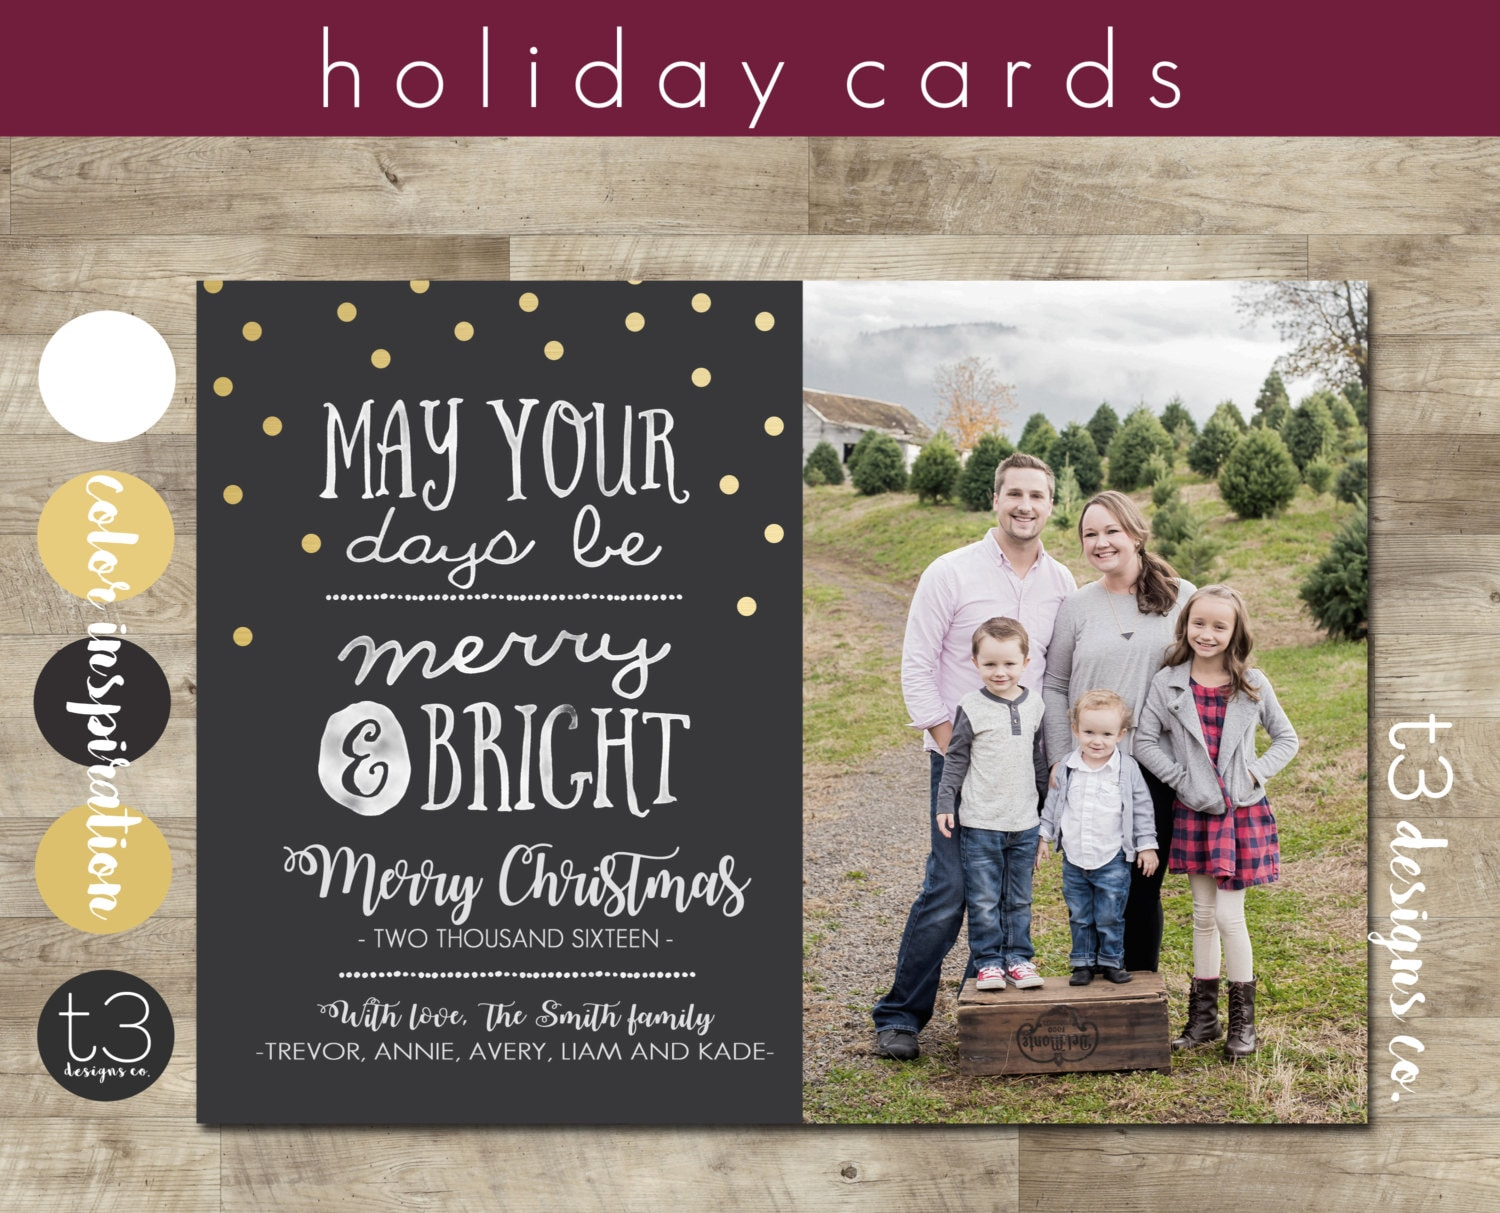 Photo Christmas Cards, Merry and Bright, Photo Holiday Cards ...